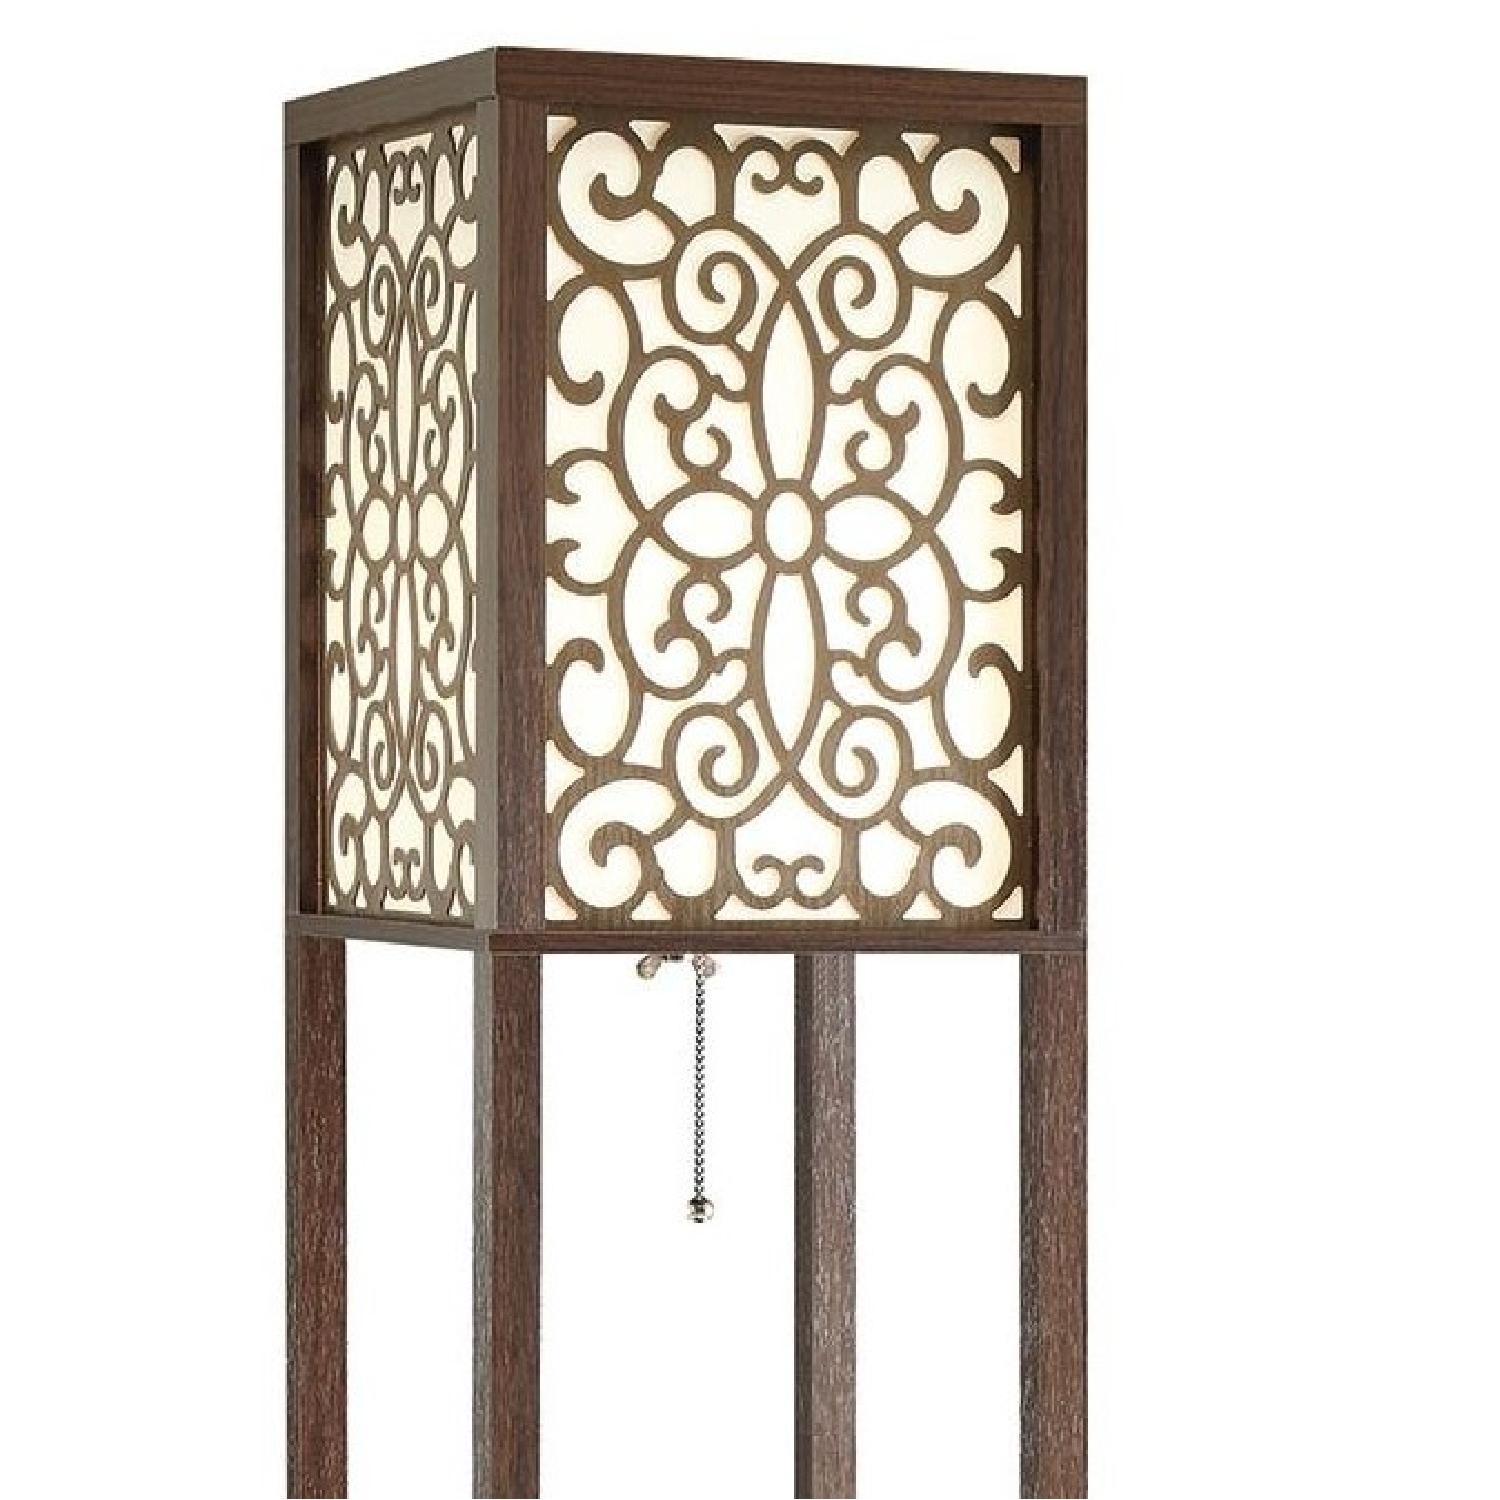 Floor Lamp w/ Flower Pattern On Shade & Three-Tiered Shelves - image-1